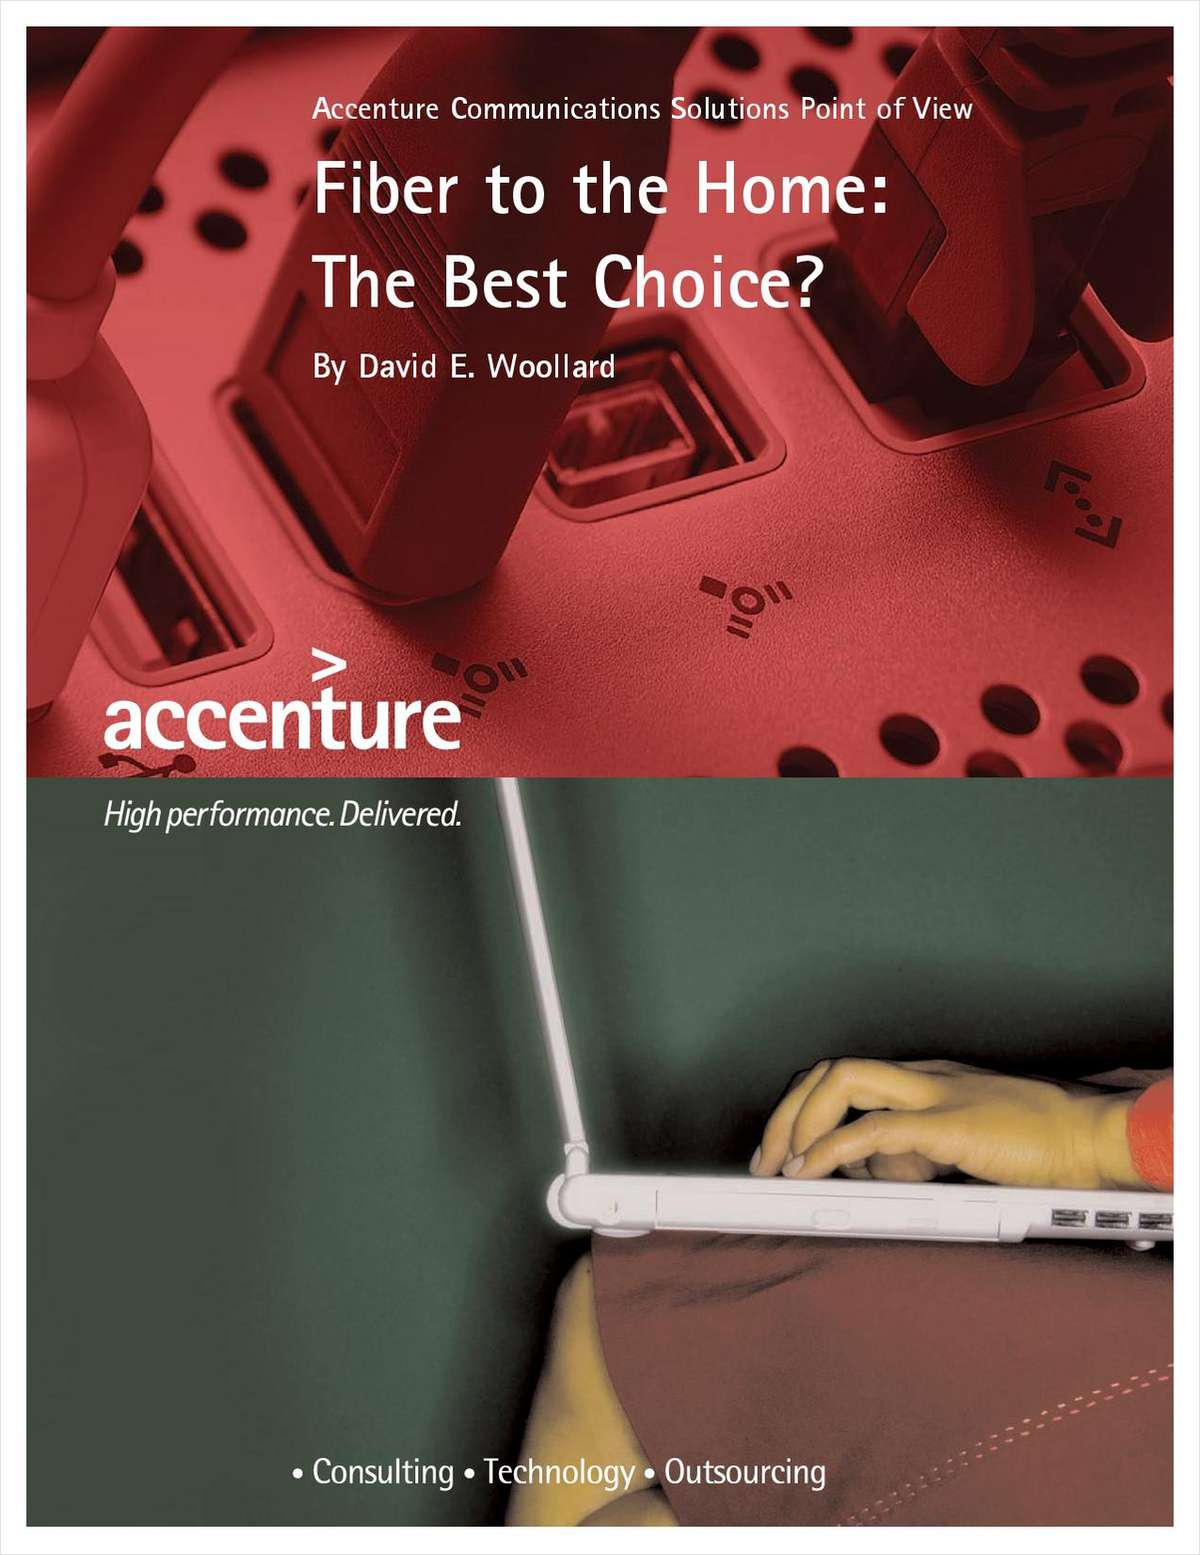 Fiber to the Home: The Best Choice?